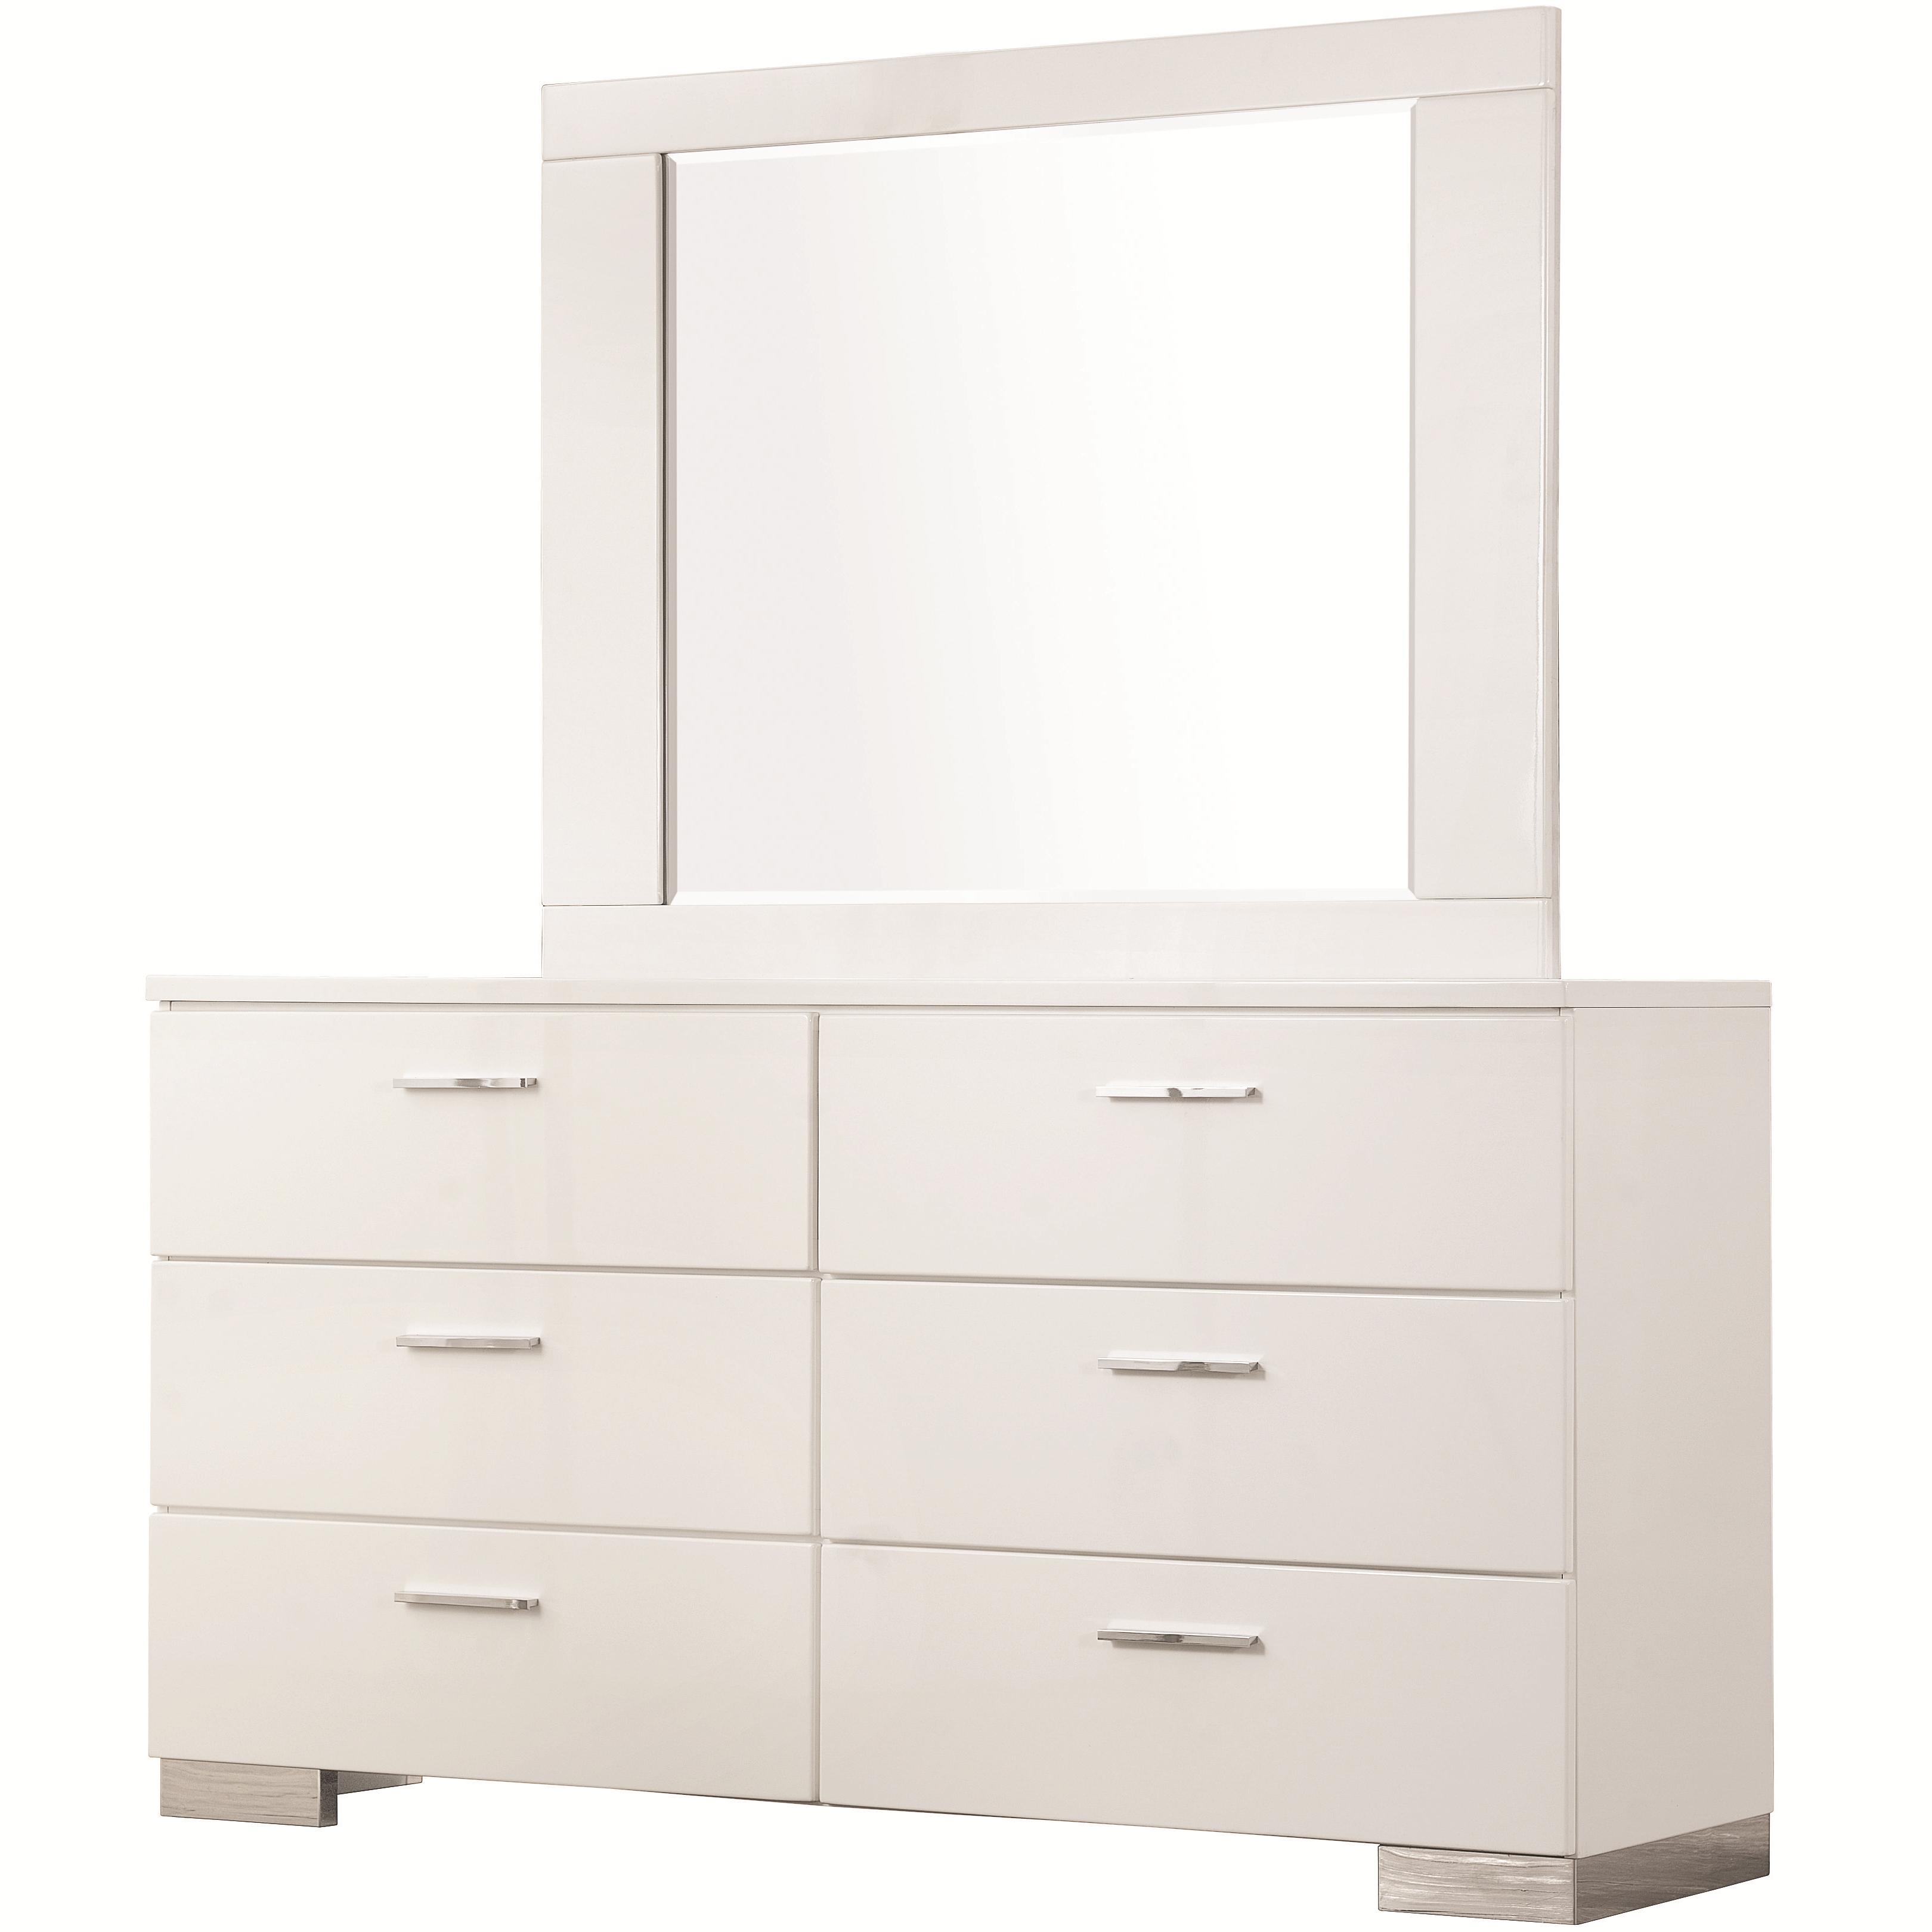 Coaster Felicity Dresser and Mirror Set - Item Number: 203503+203504